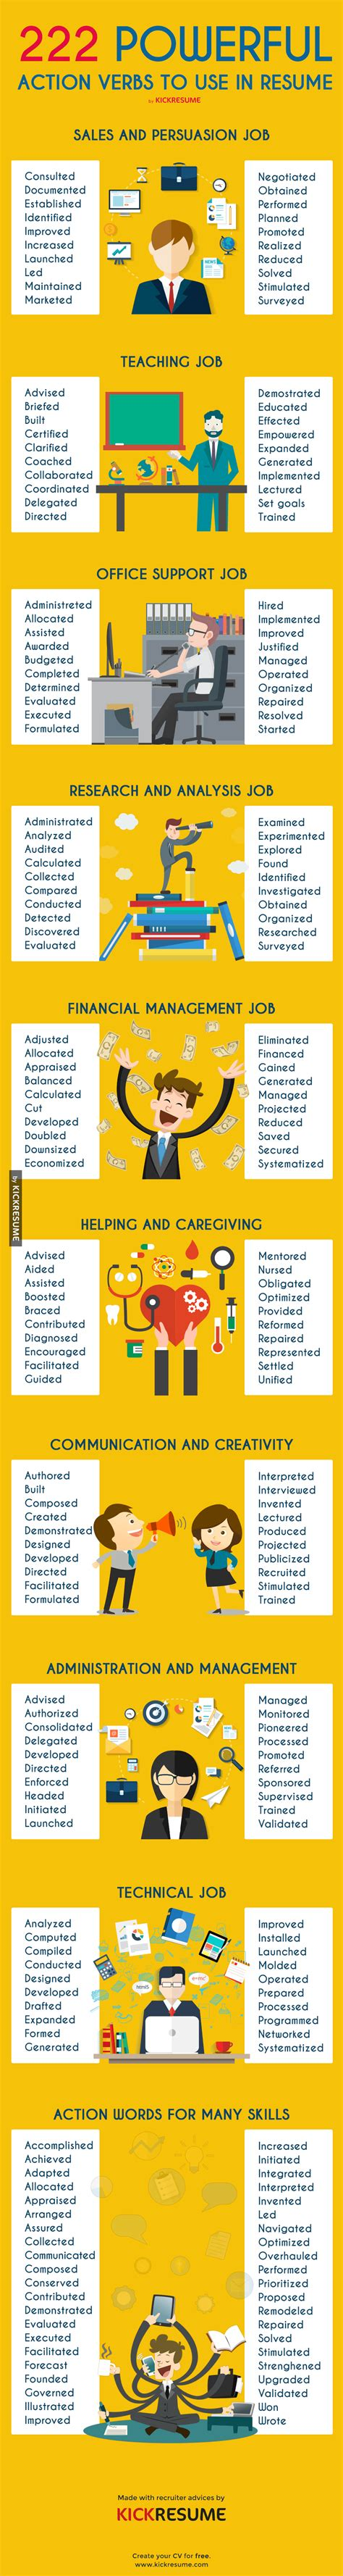 Words To Use On Resume Imgur by 222 Powerful Verbs To Use In Your Resume Tfe Times